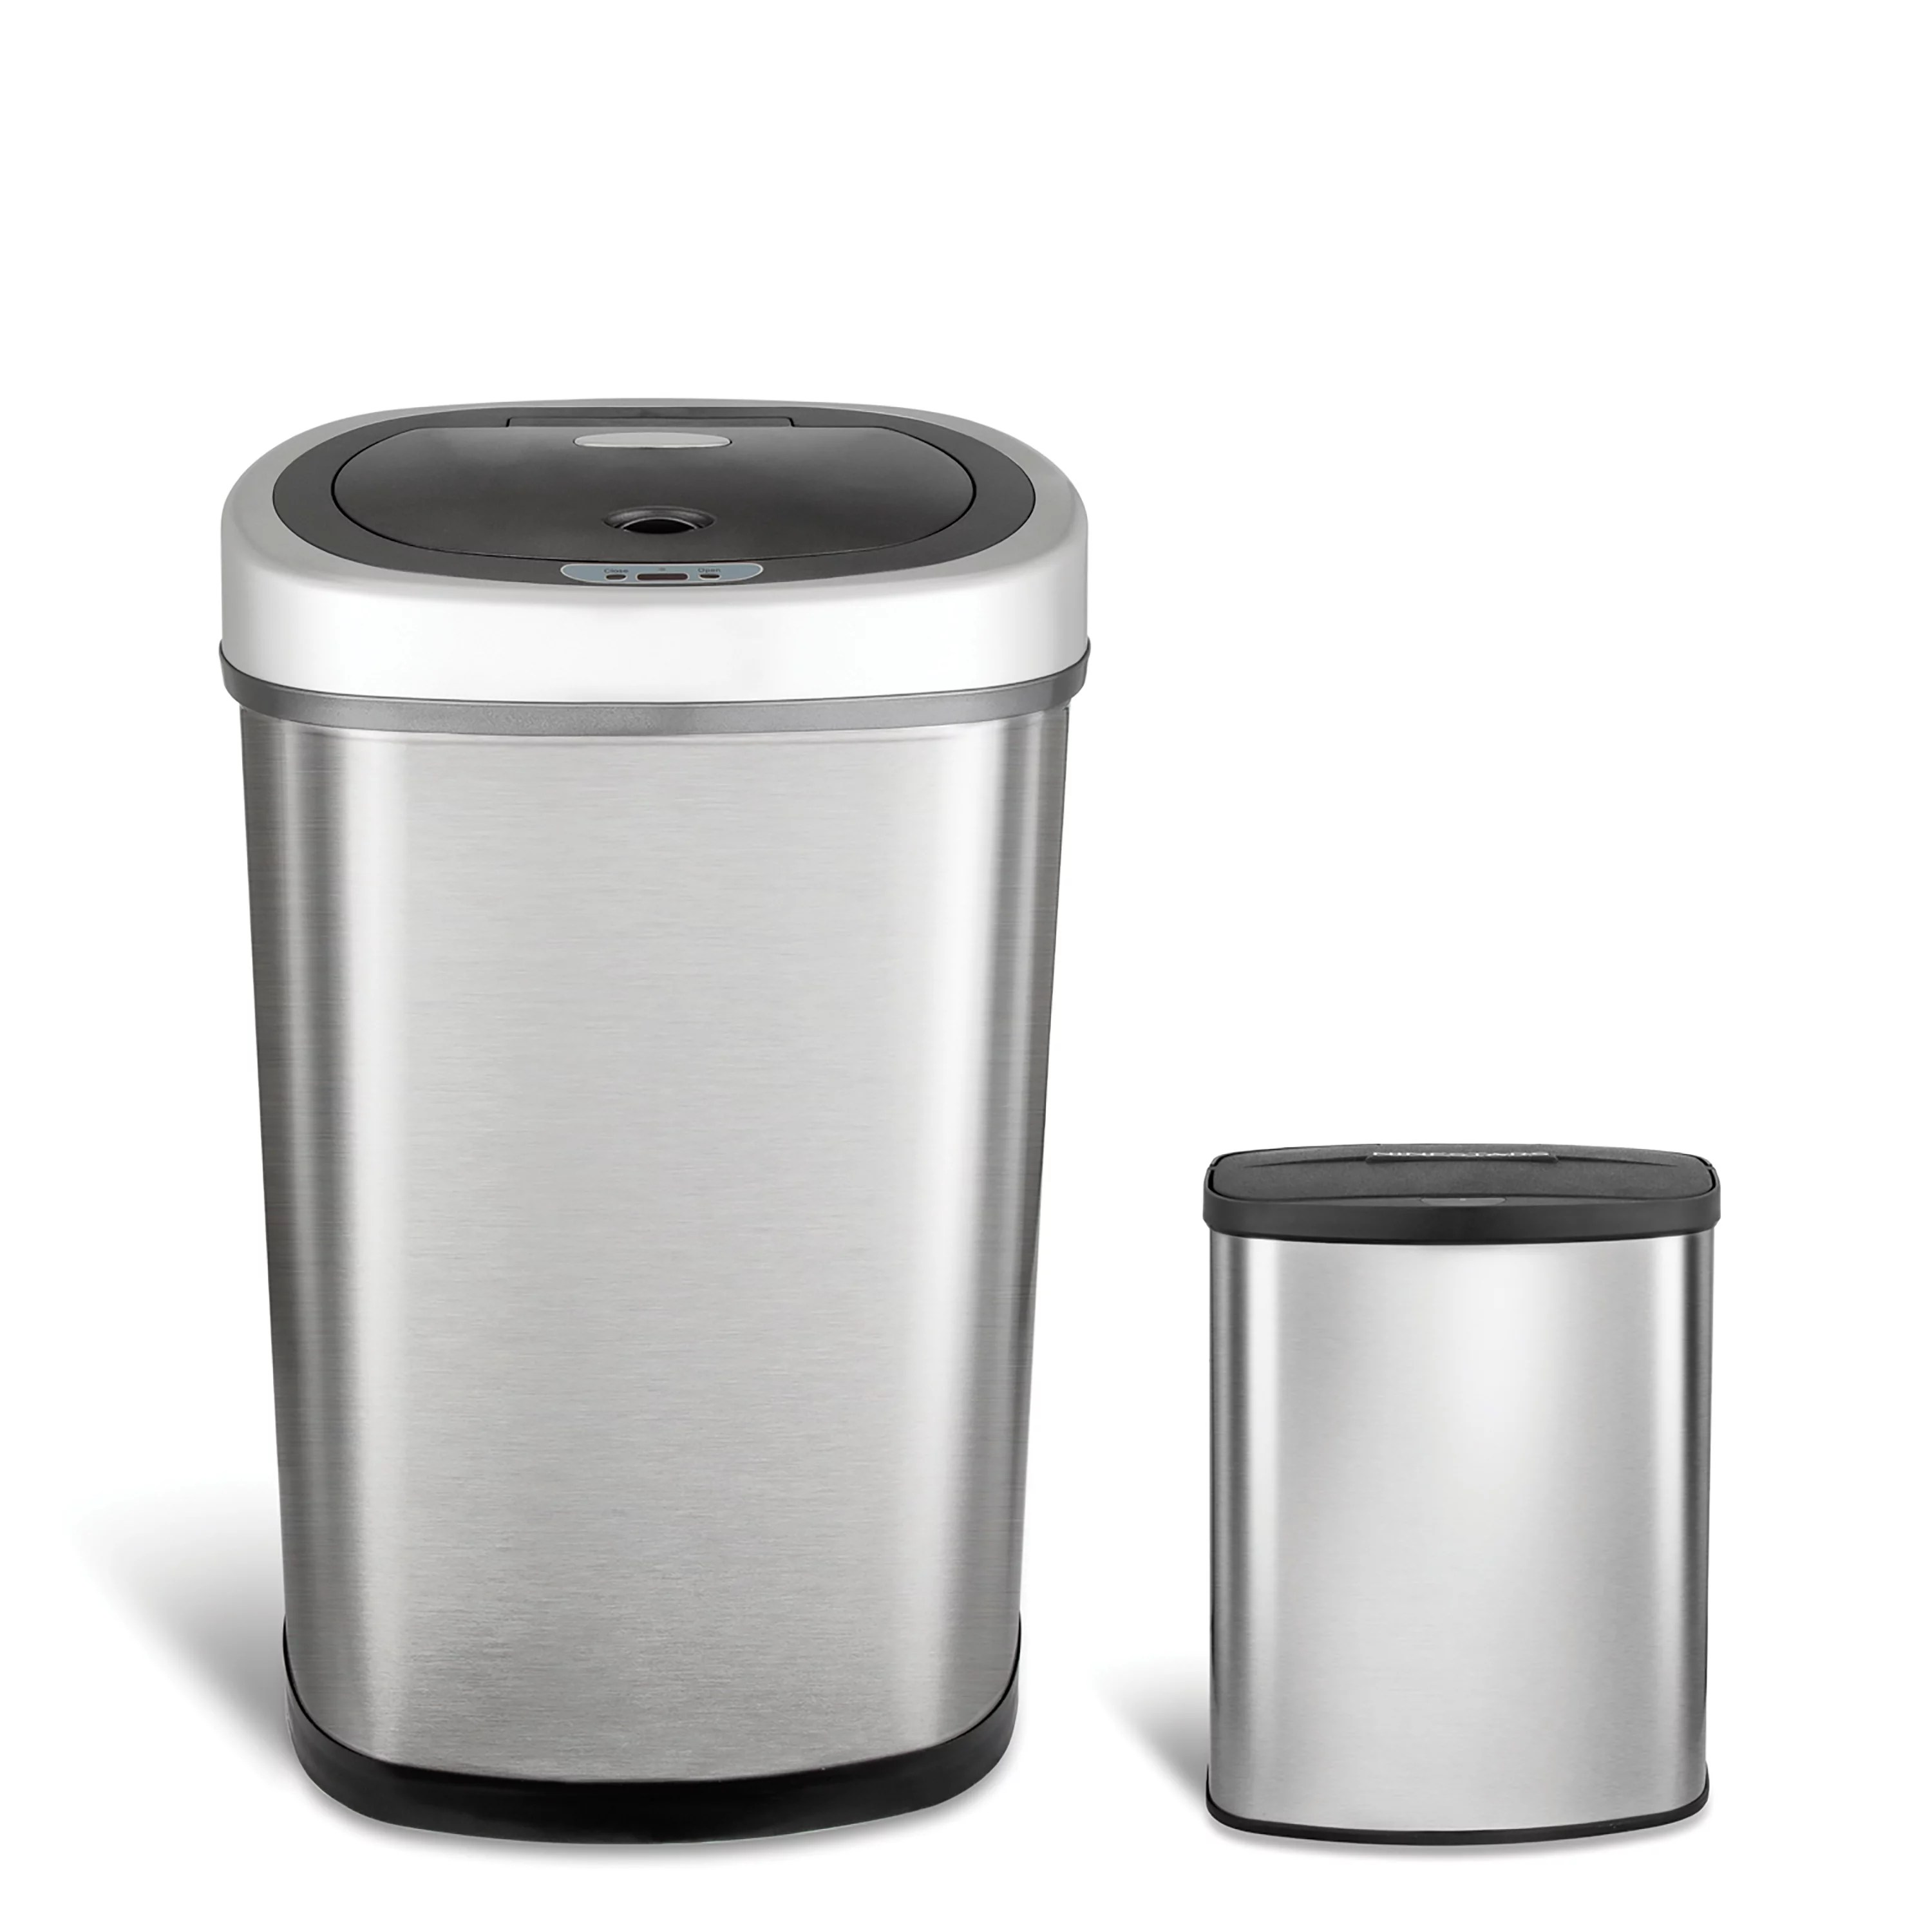 Small White Trash Can With Lid Nine Stars Motion Sensor Touchless 13 2 Gal 2 1 Gal Trash Can Combo Stainless Steel